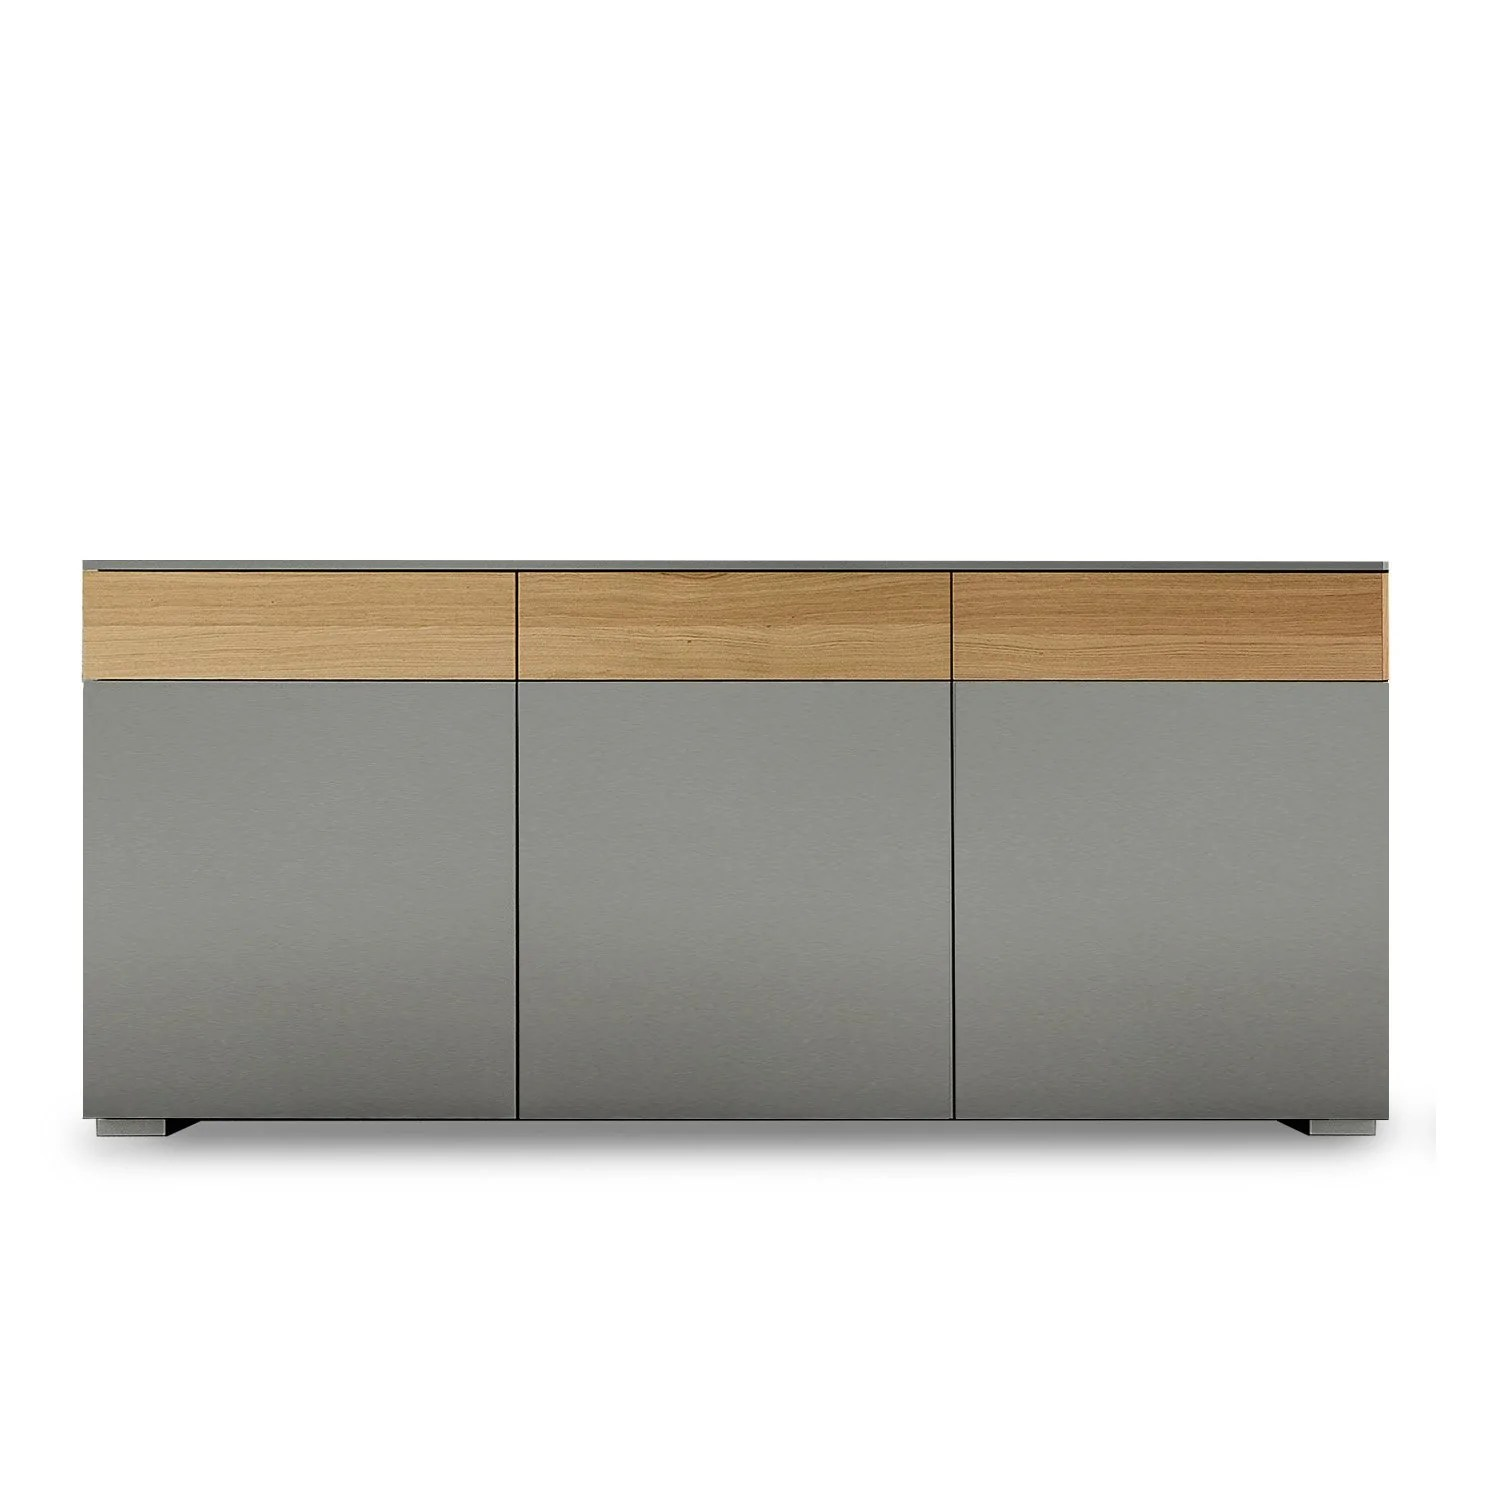 Sideboard Modern Slim 3 Door 3 Drawers Sideboard | Dall'agnese | Dining Room Furniture